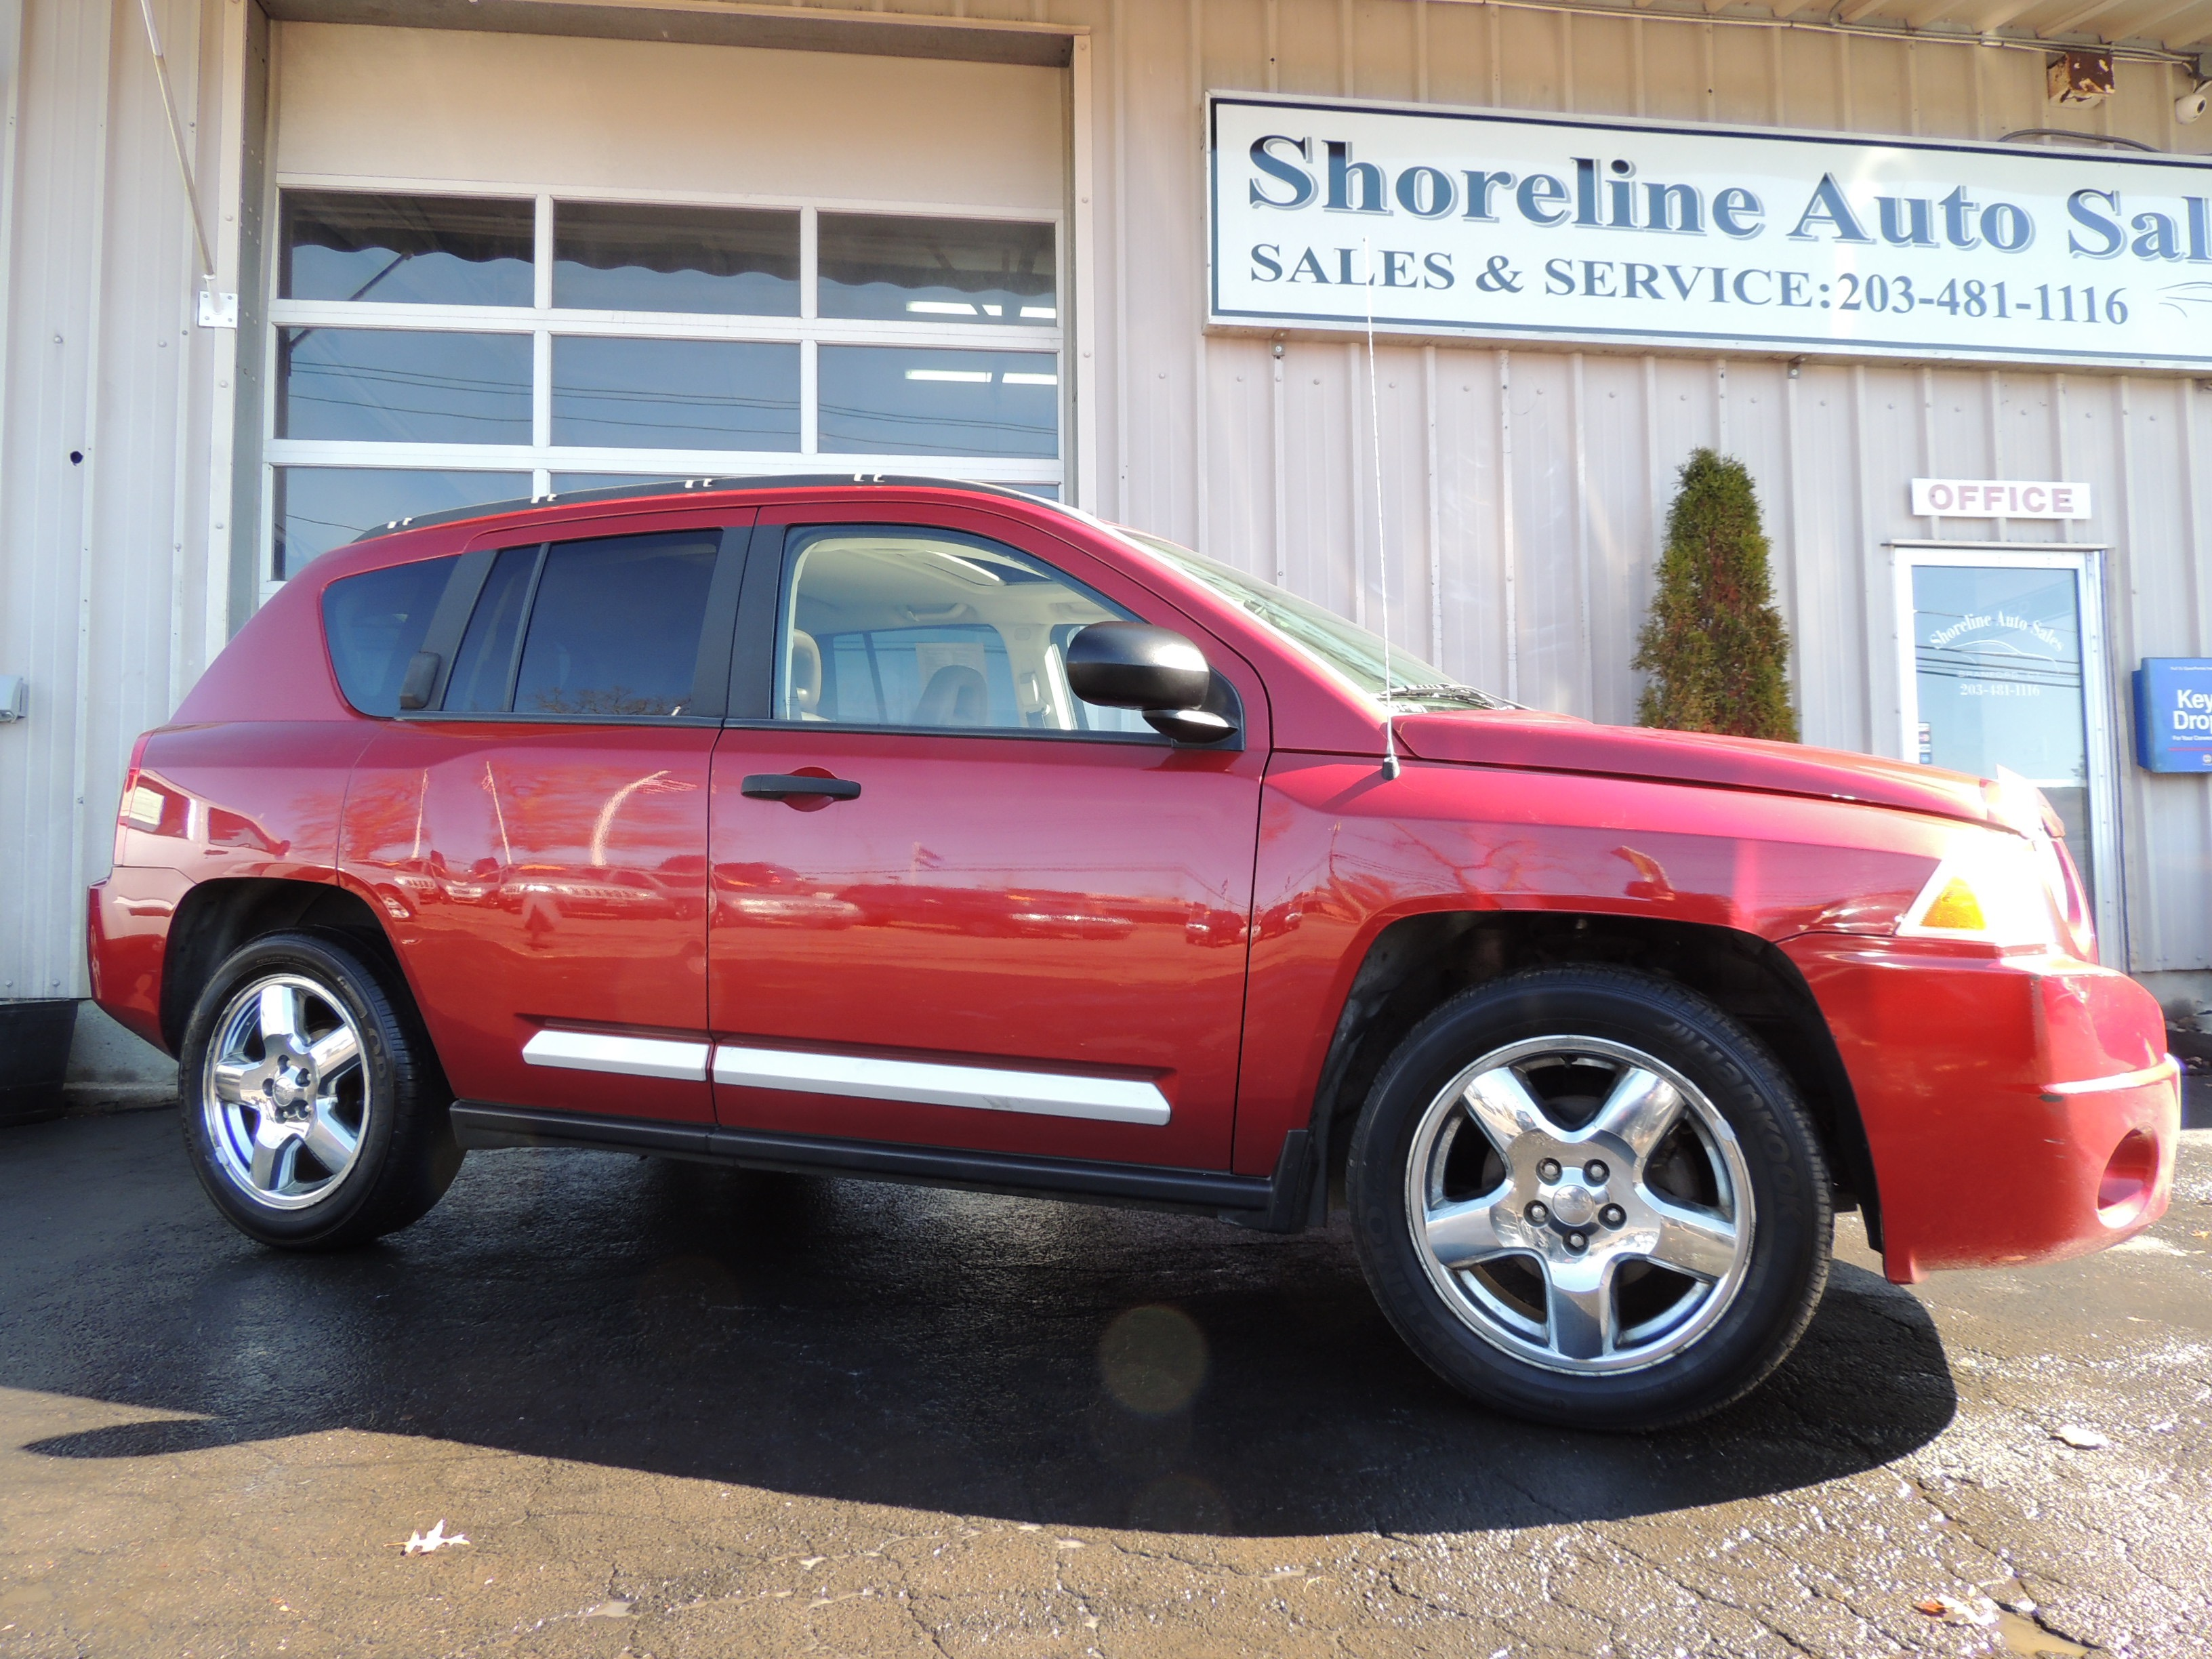 2007 jeep compass limited edition shoreline auto sales. Black Bedroom Furniture Sets. Home Design Ideas